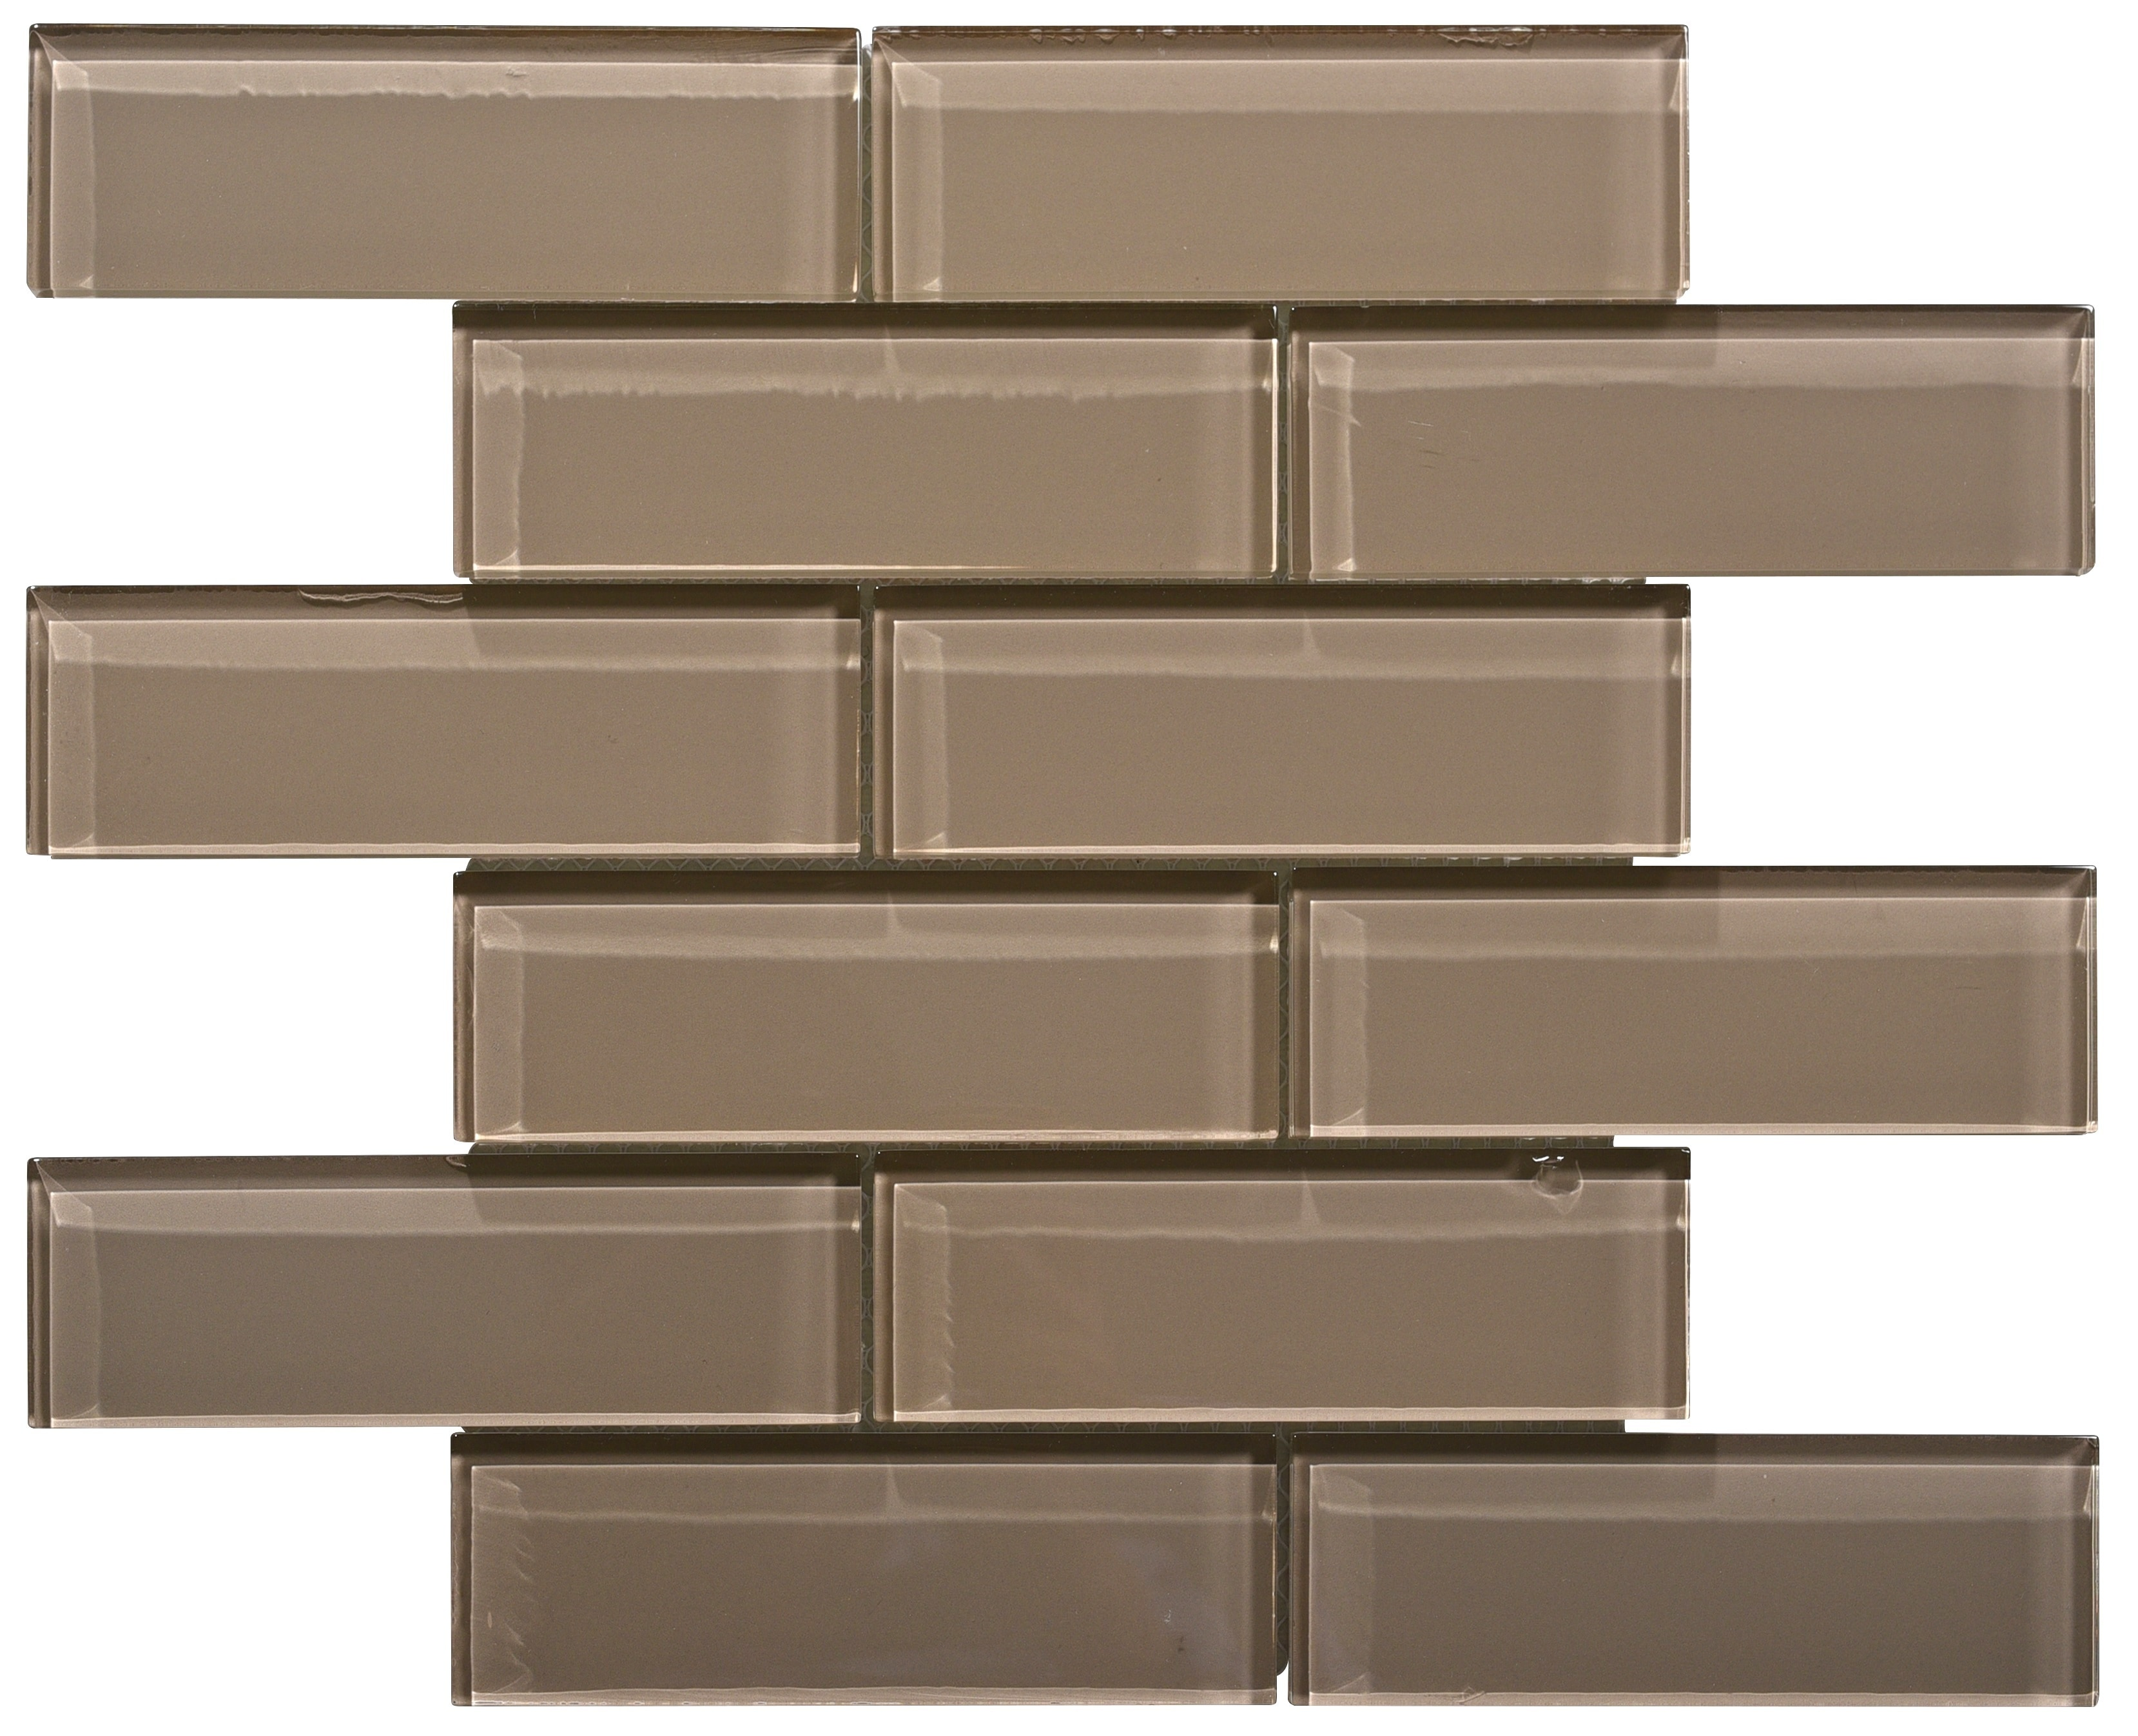 Glass Mosaic / 16 x 12 x 0.31 inches / Glossy Small Glass Subway Tile In Beige 0